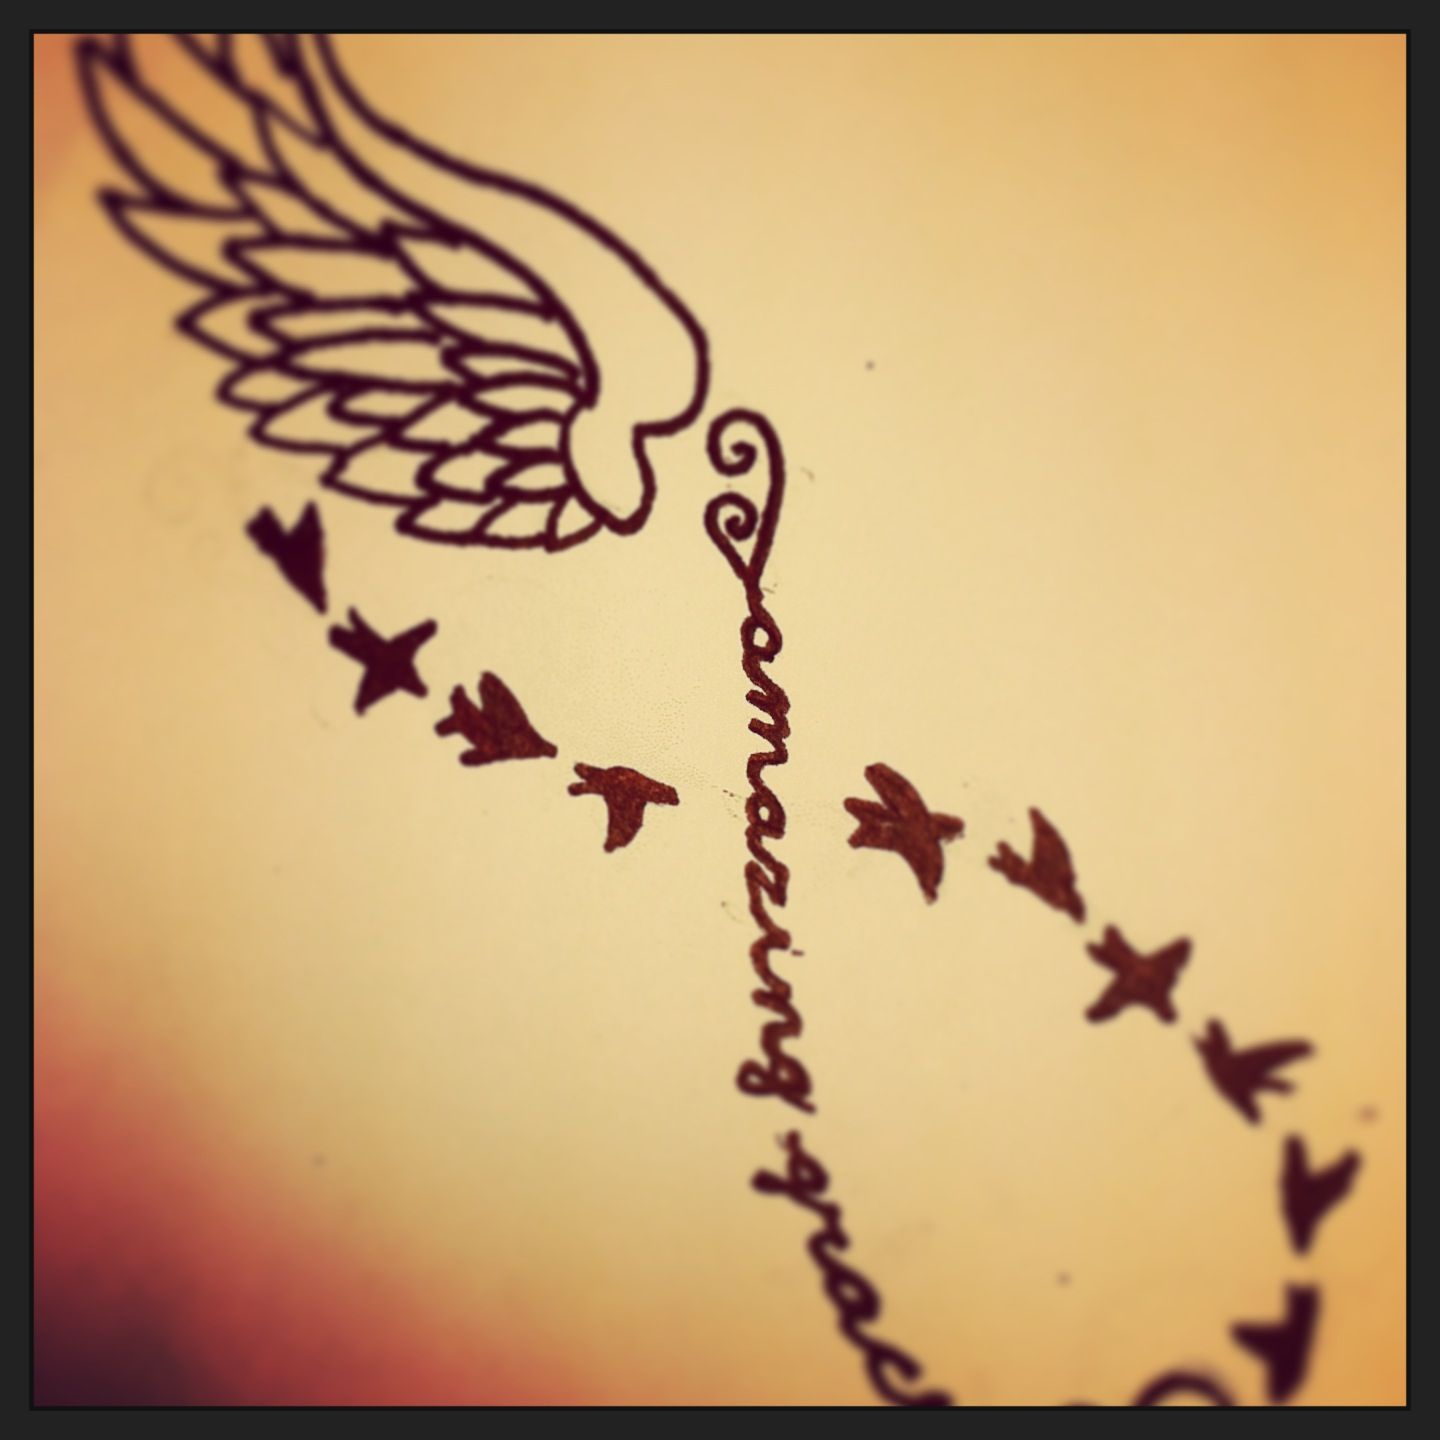 Infinity tattoo w angel wings and sparrows then amazing grace infinity tattoo w angel wings and sparrows then amazing grace written in the middle biocorpaavc Images